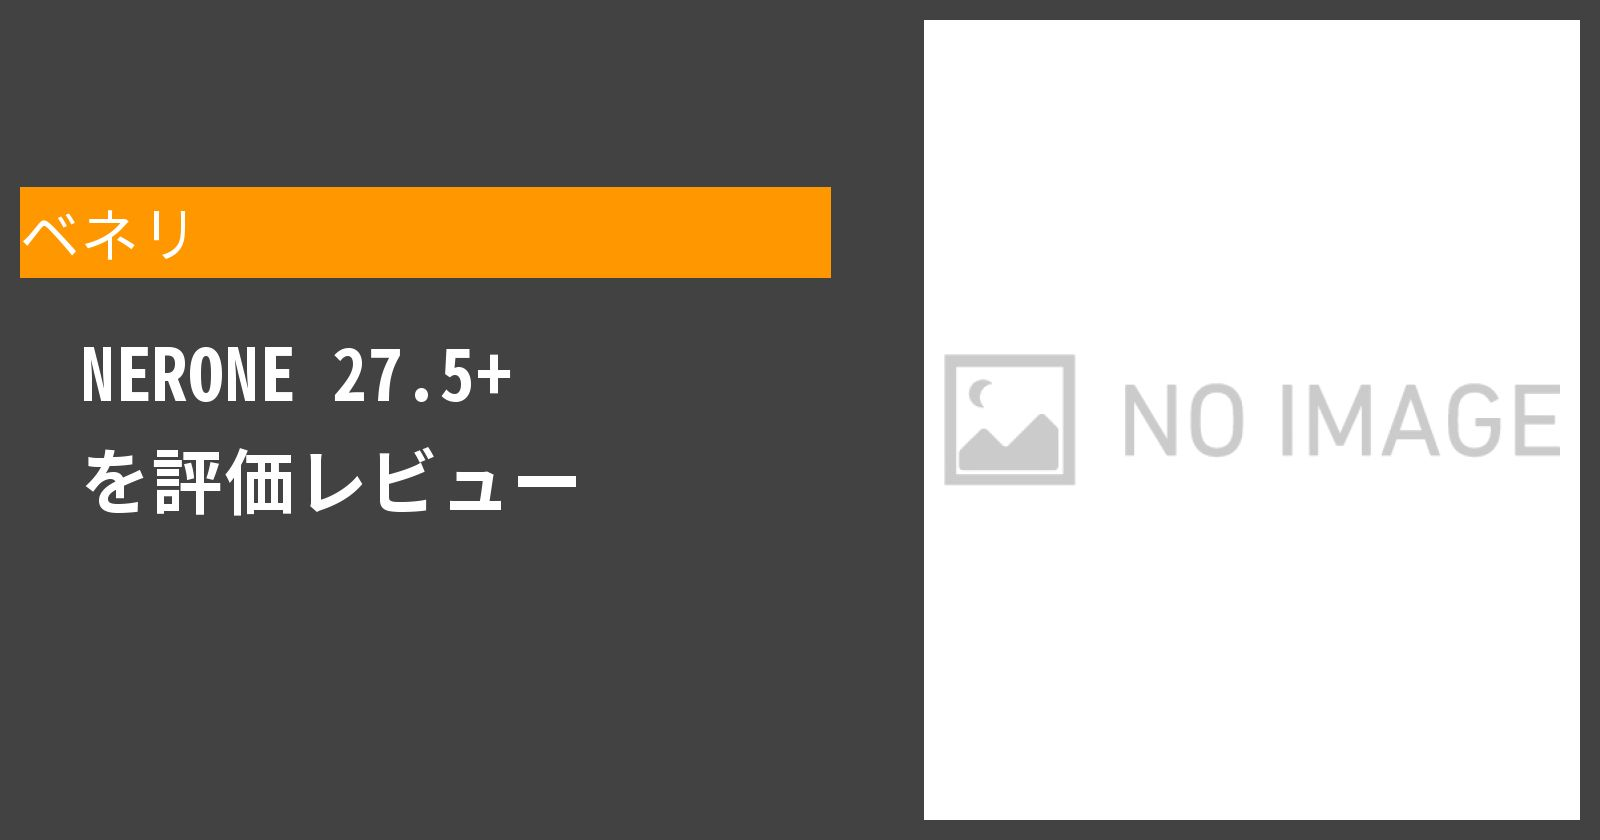 NERONE 27.5+を徹底評価